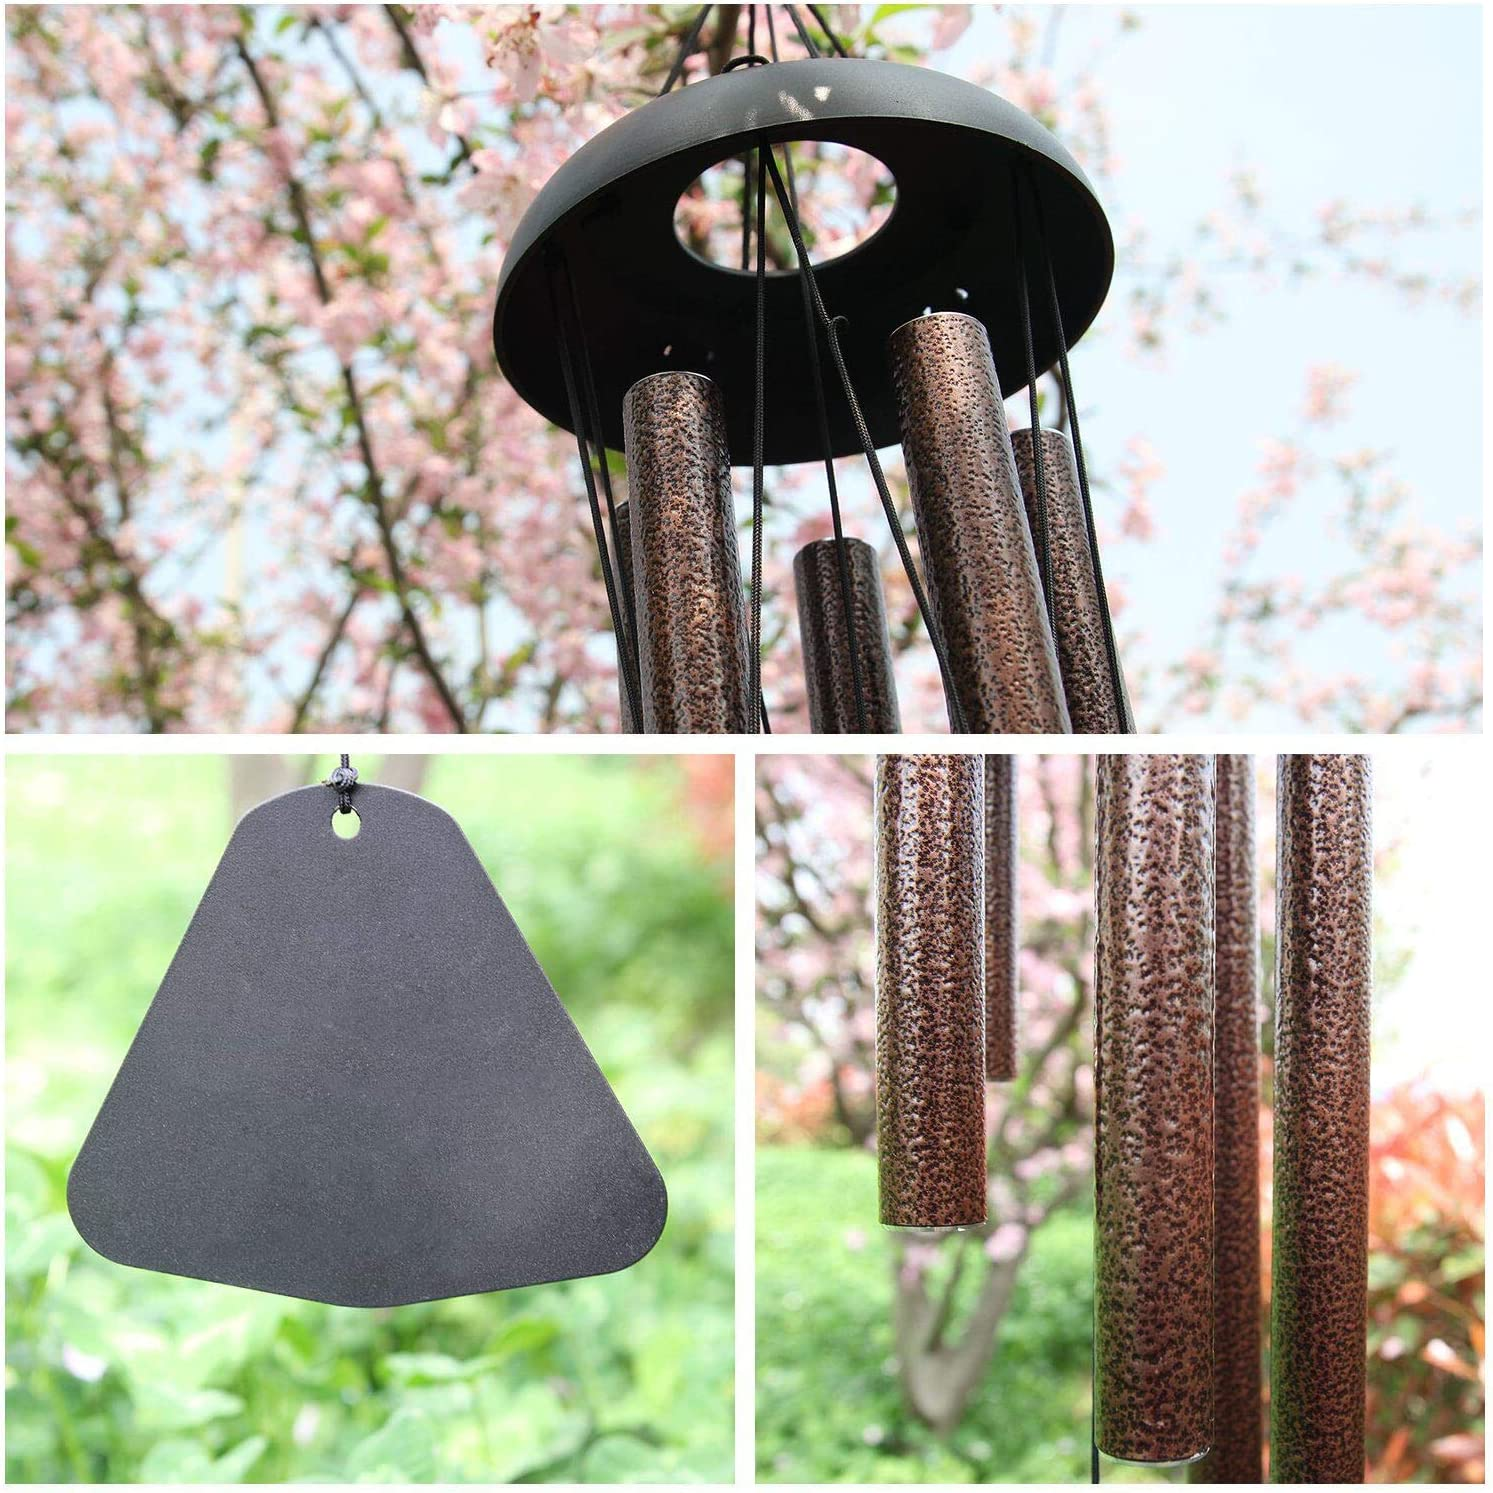 Garden Balcony Chimes Outdoor Hanging Ornaments Kukiu 5 Tuned Metal Tubes Wind Chimes